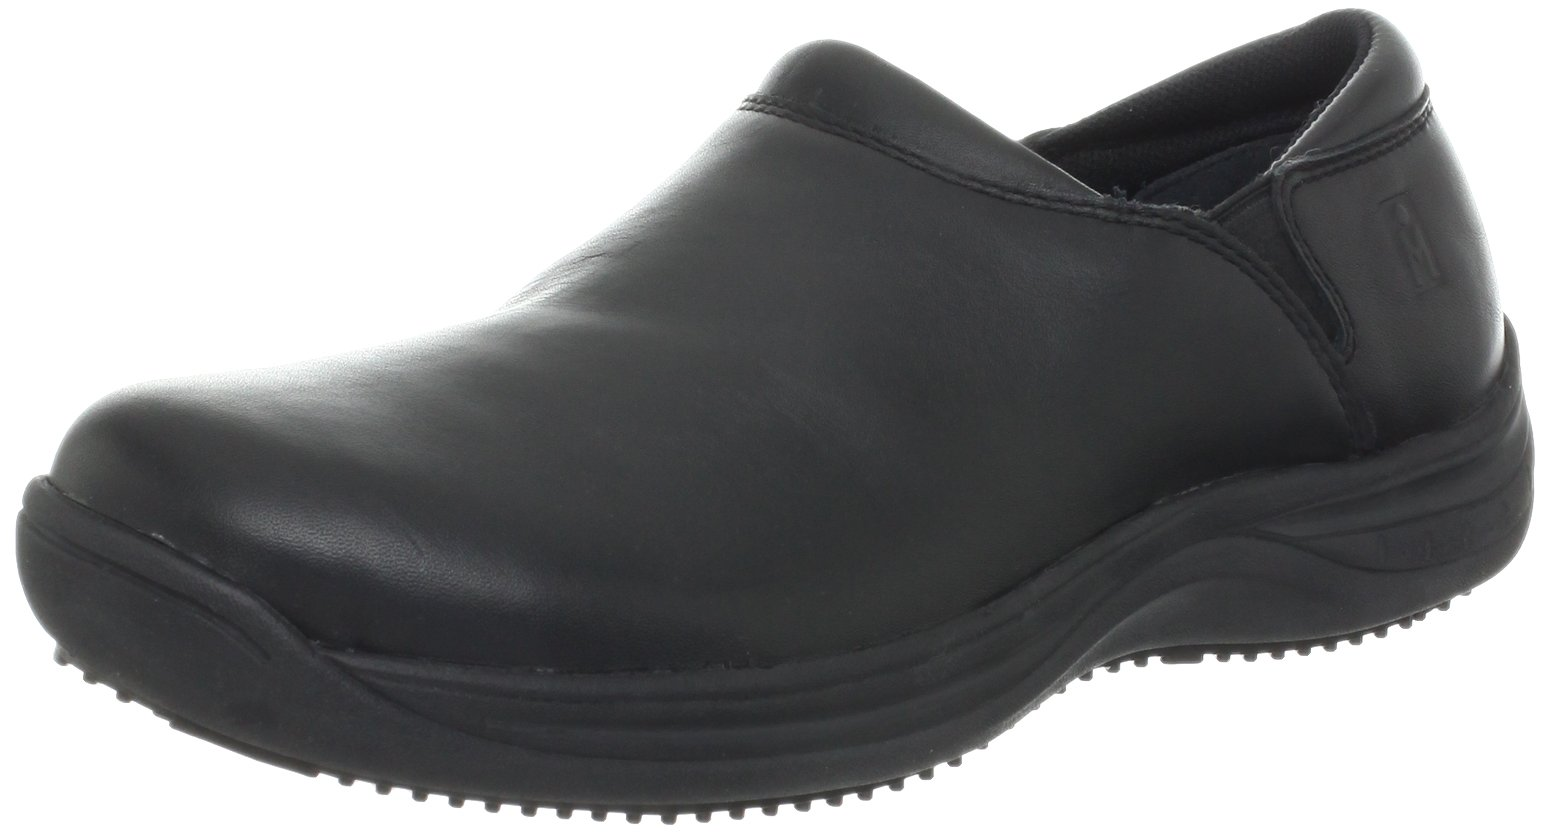 MOZO Women's Forza Slip Resistant Work Clog,Black,6.5 M US